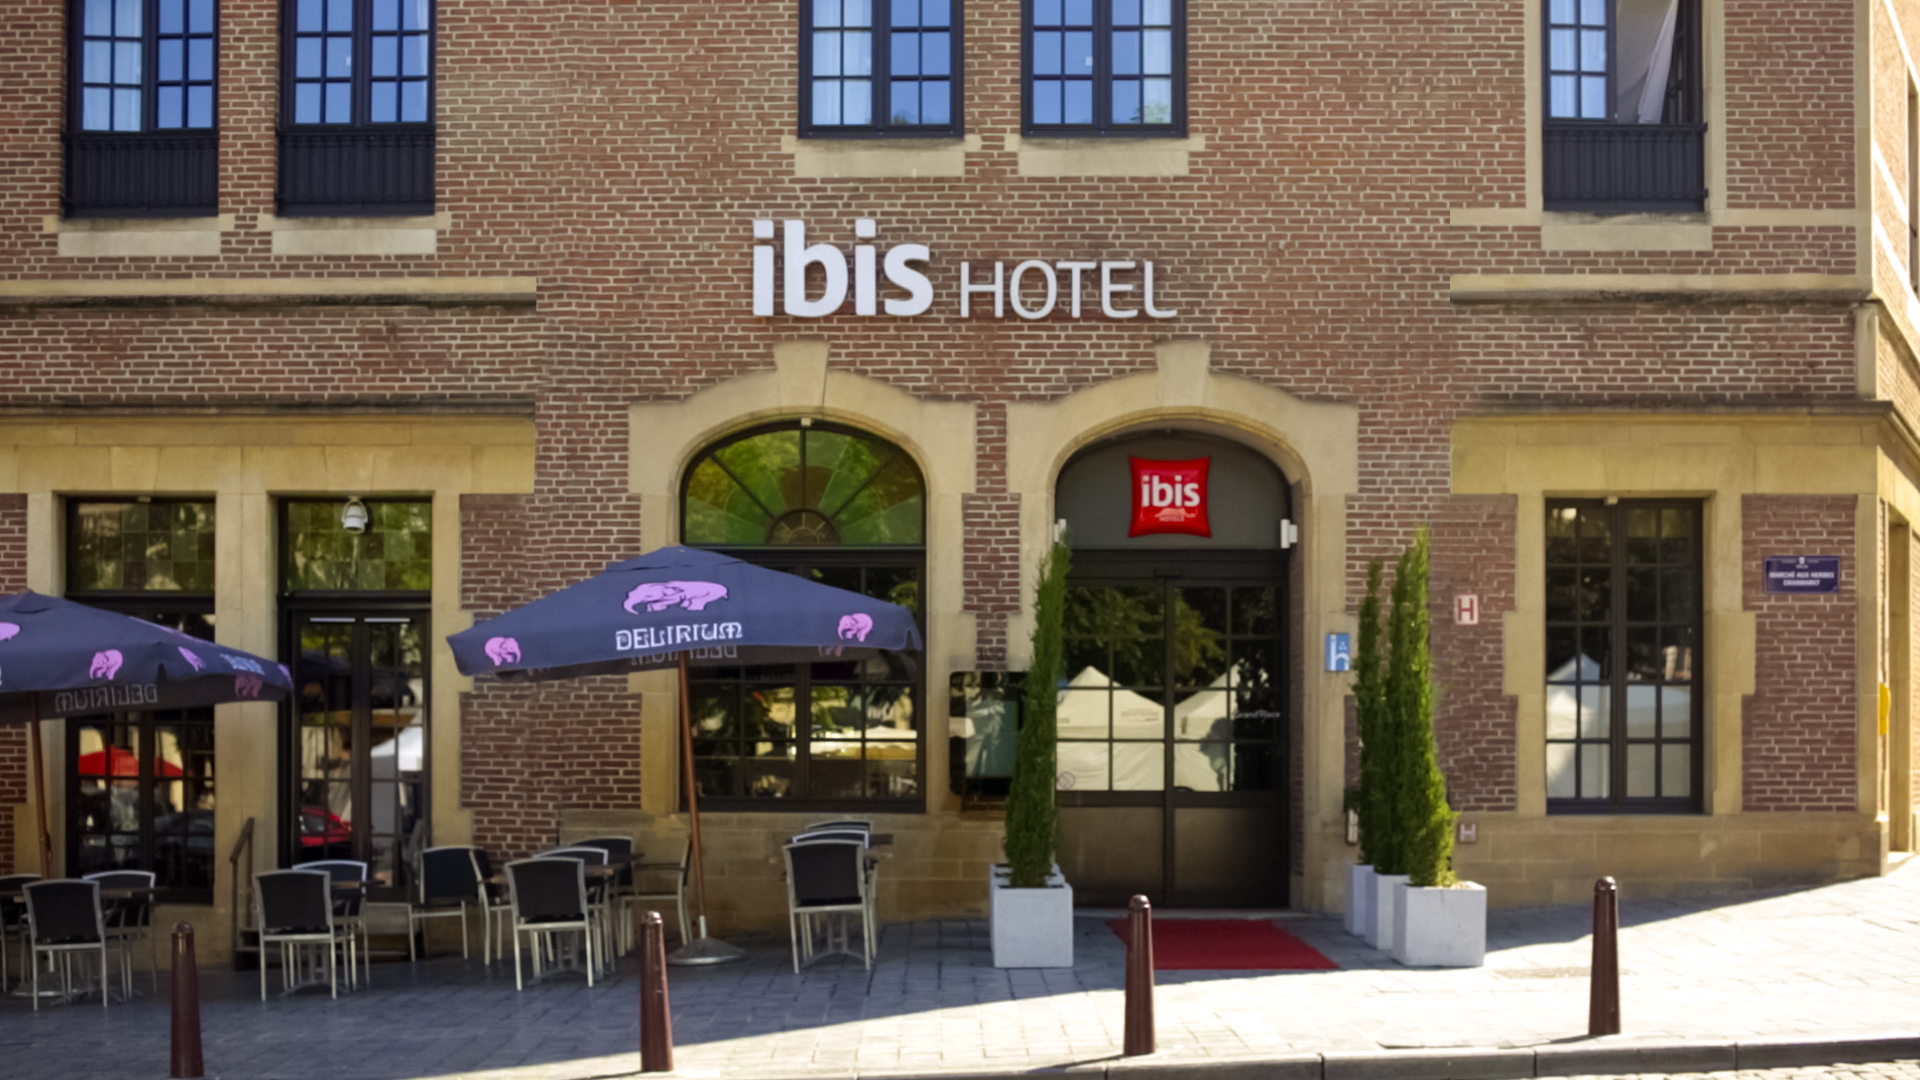 Hotel Ibis Brussel Grand Place